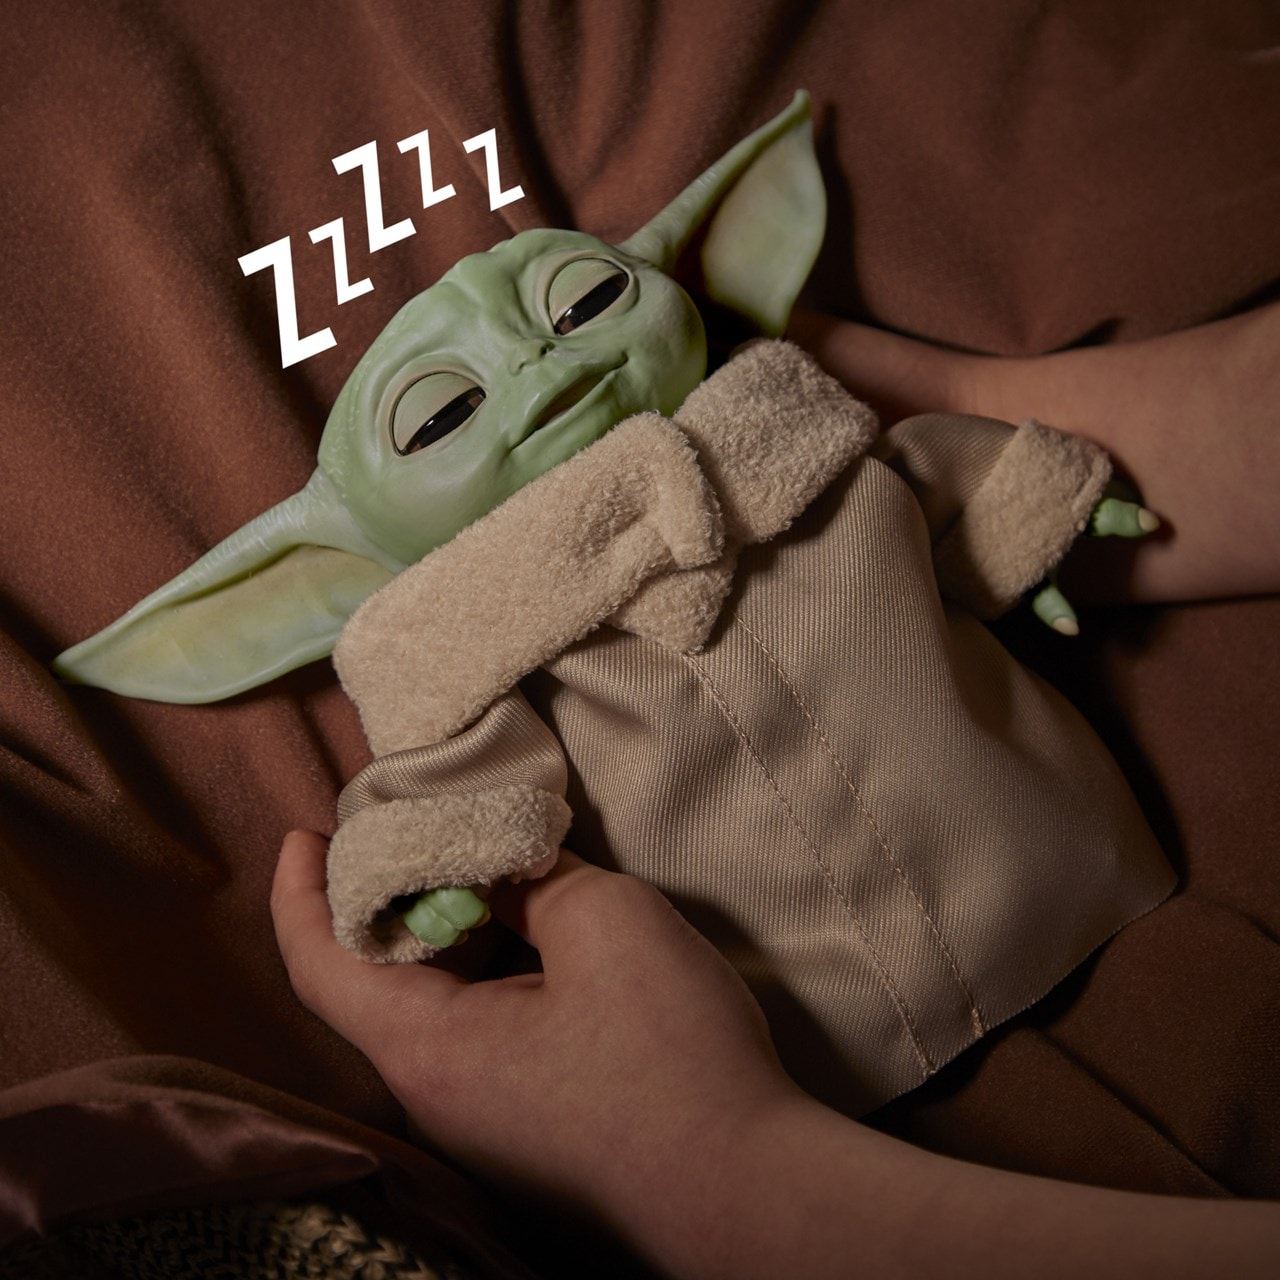 Star Wars: The Child (Baby Yoda) Animatronic Toy - 5